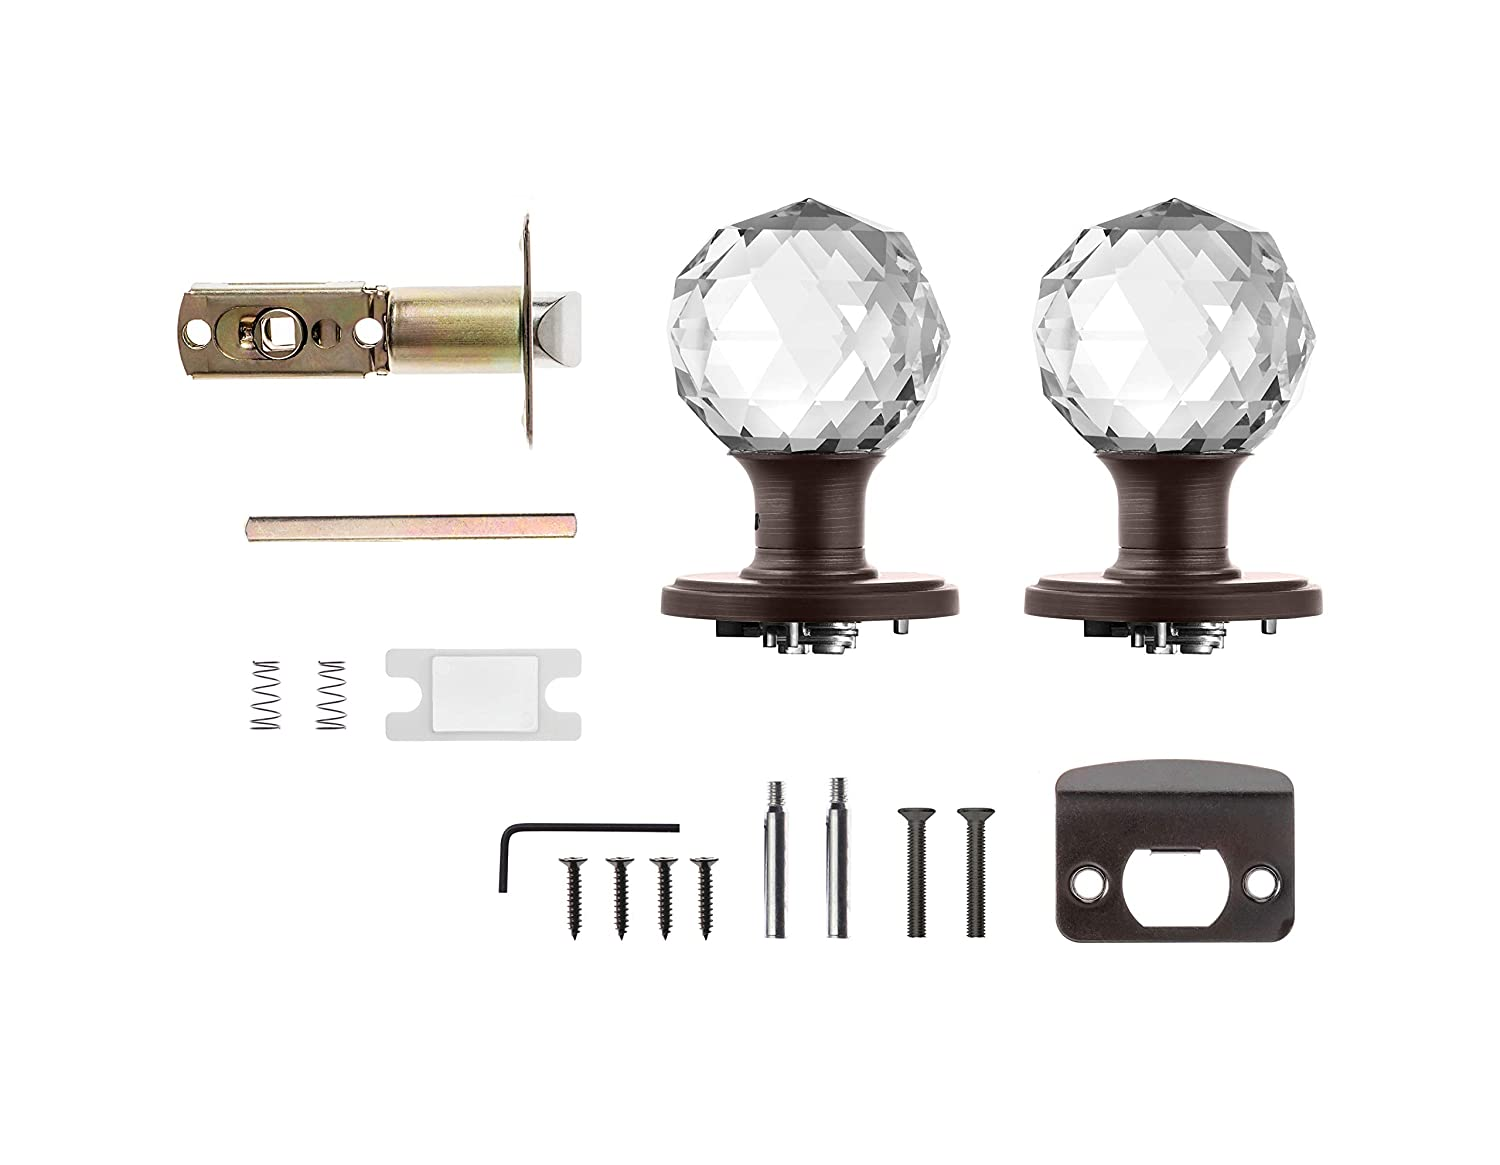 Polished Chrome Privacy Function for Bed and Bath Decor Living AMG and Enchante Accessories Faceted Crystal Door Knobs with Lock IRIS Collection